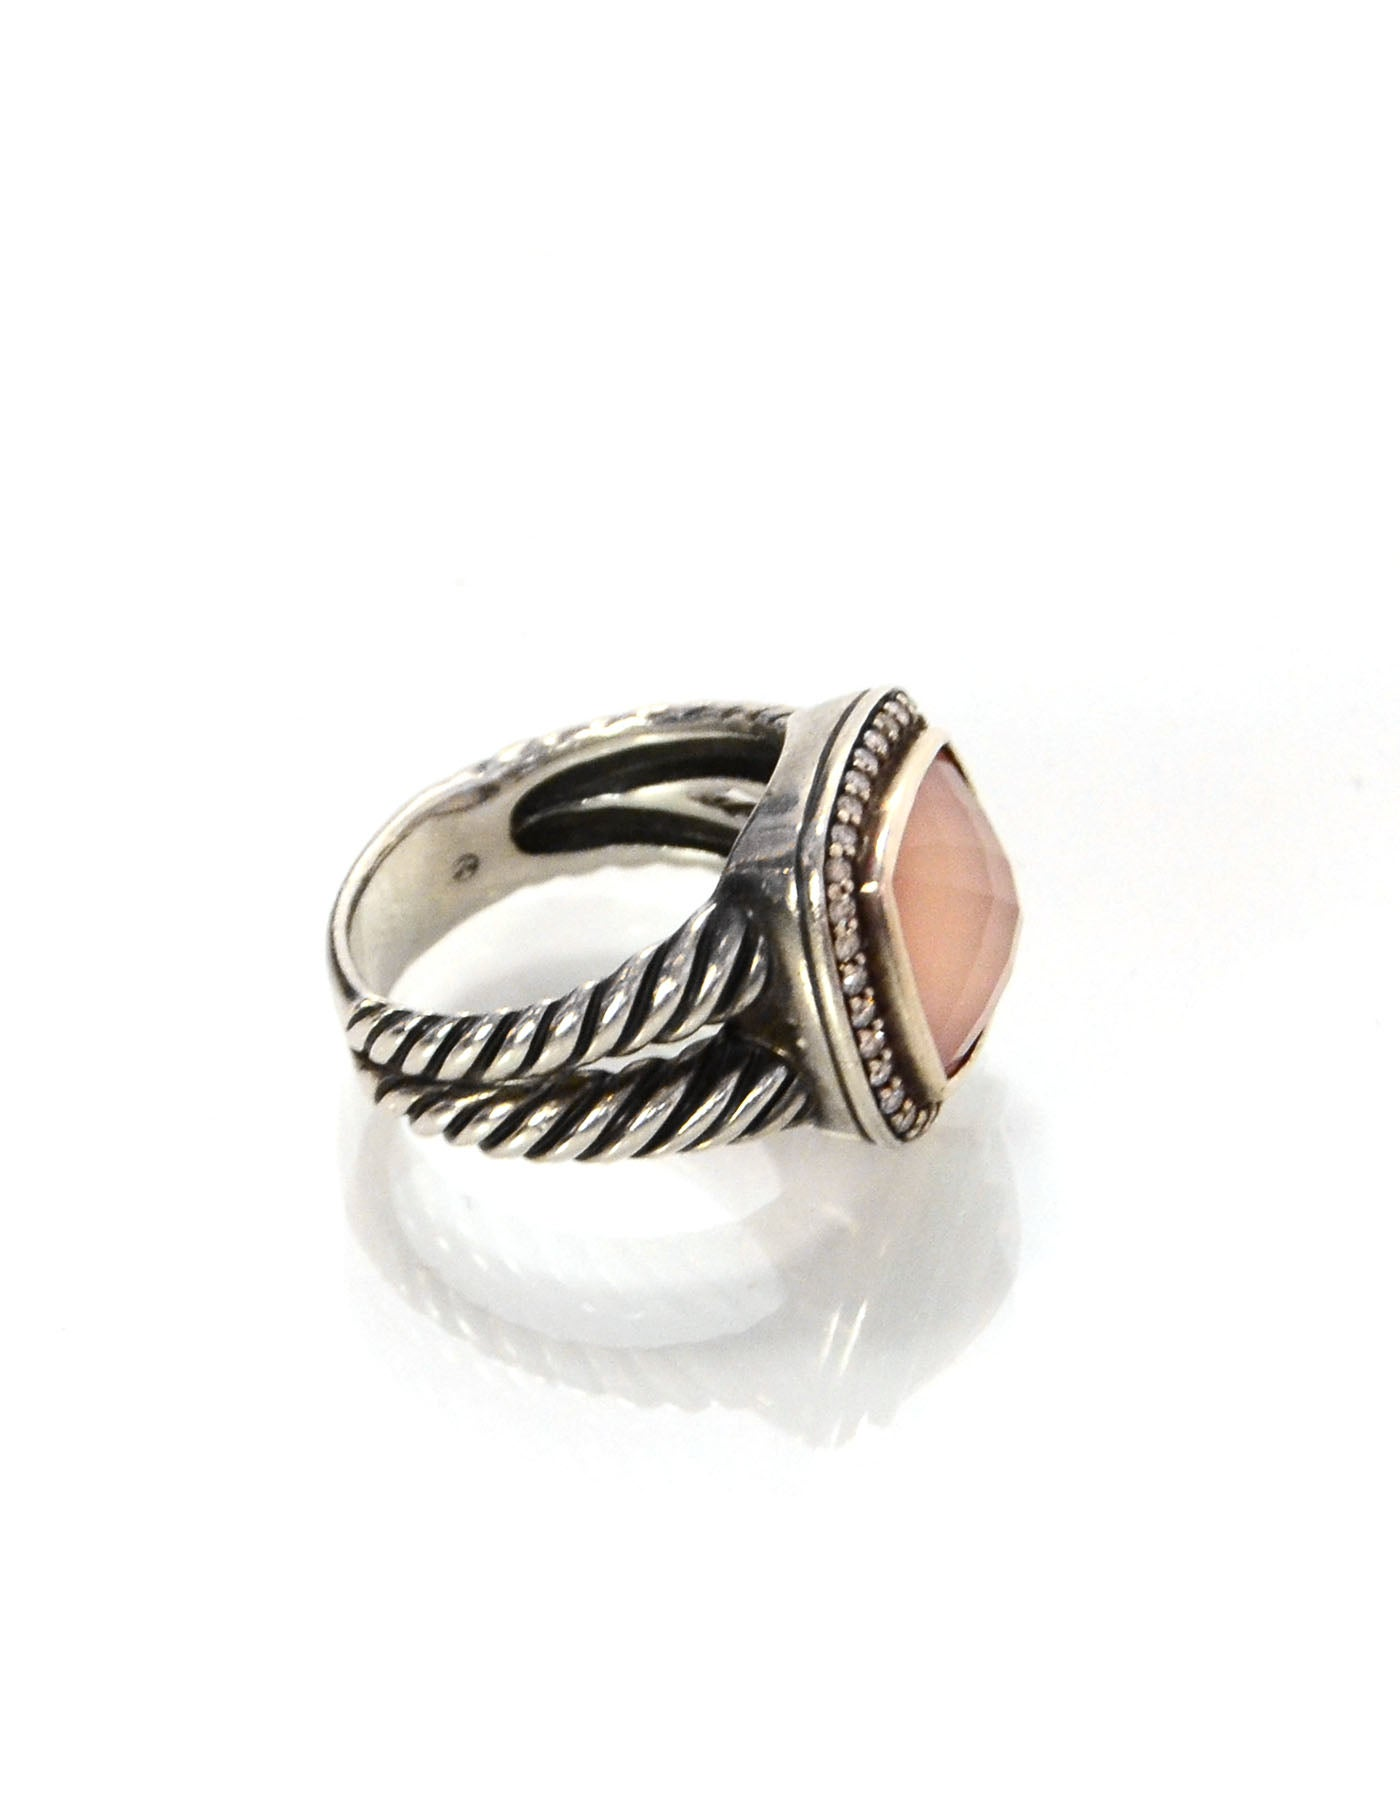 mz split ring quick david yurman shank rings neiman look th marcus